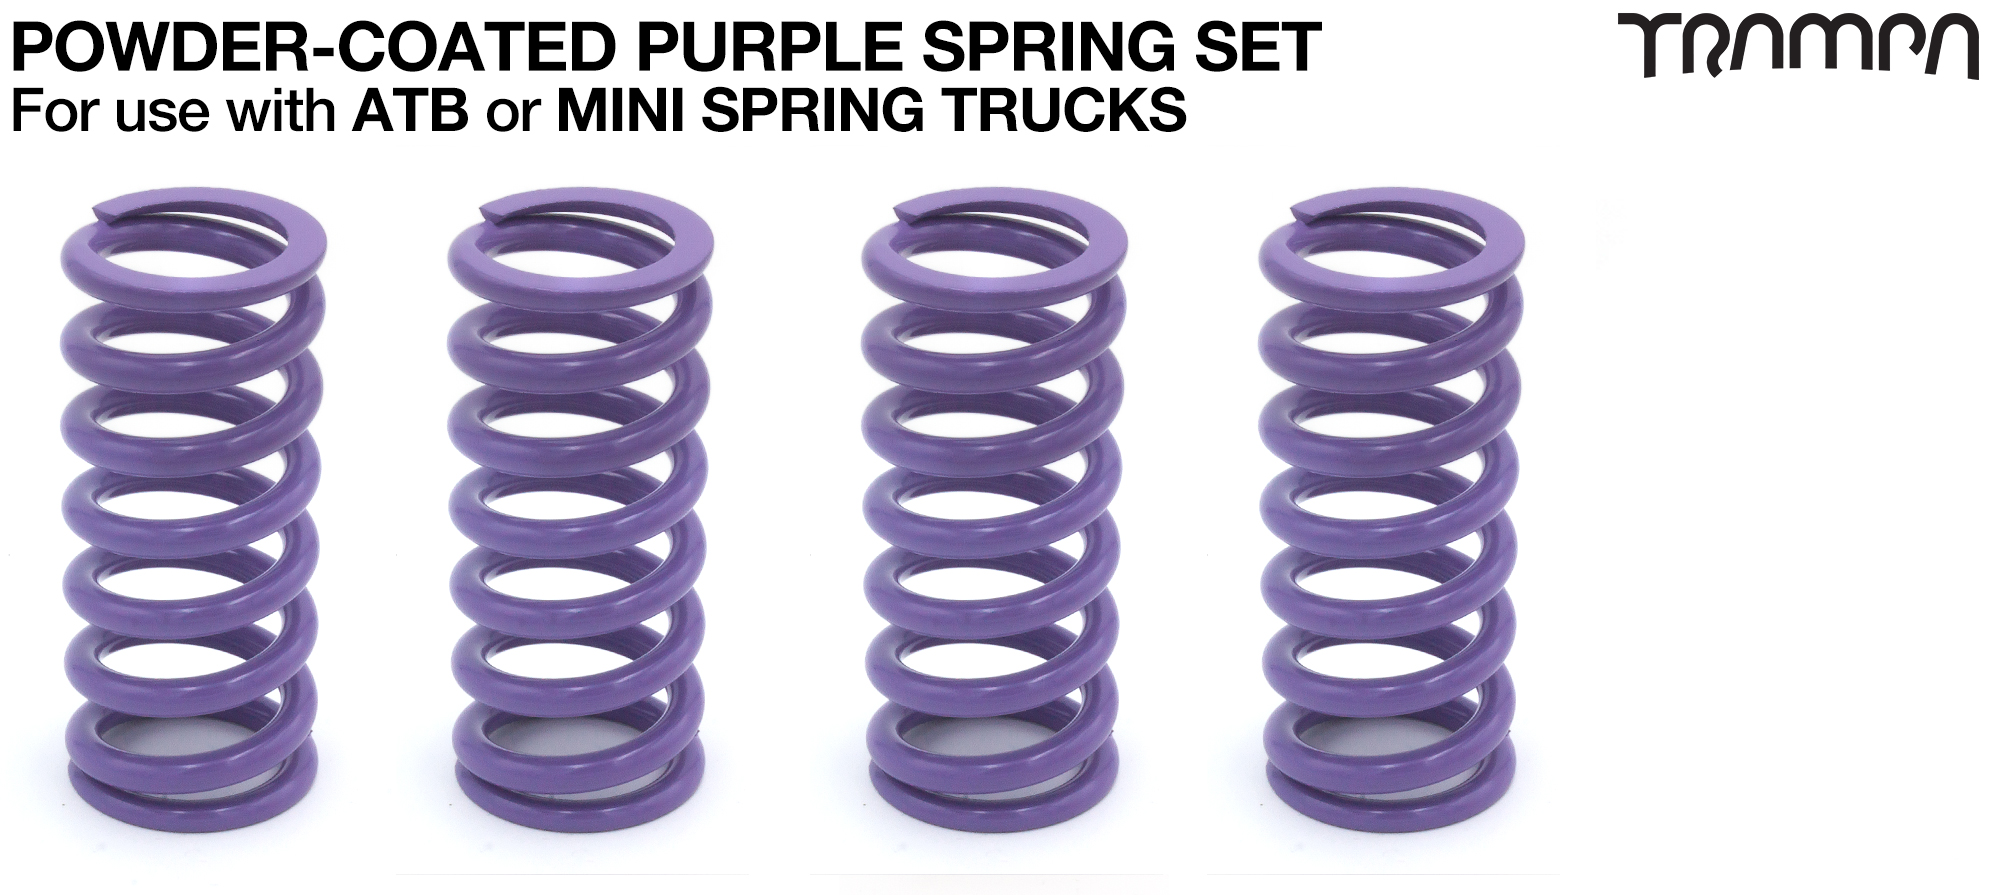 PURPLE Powder Coated Springs